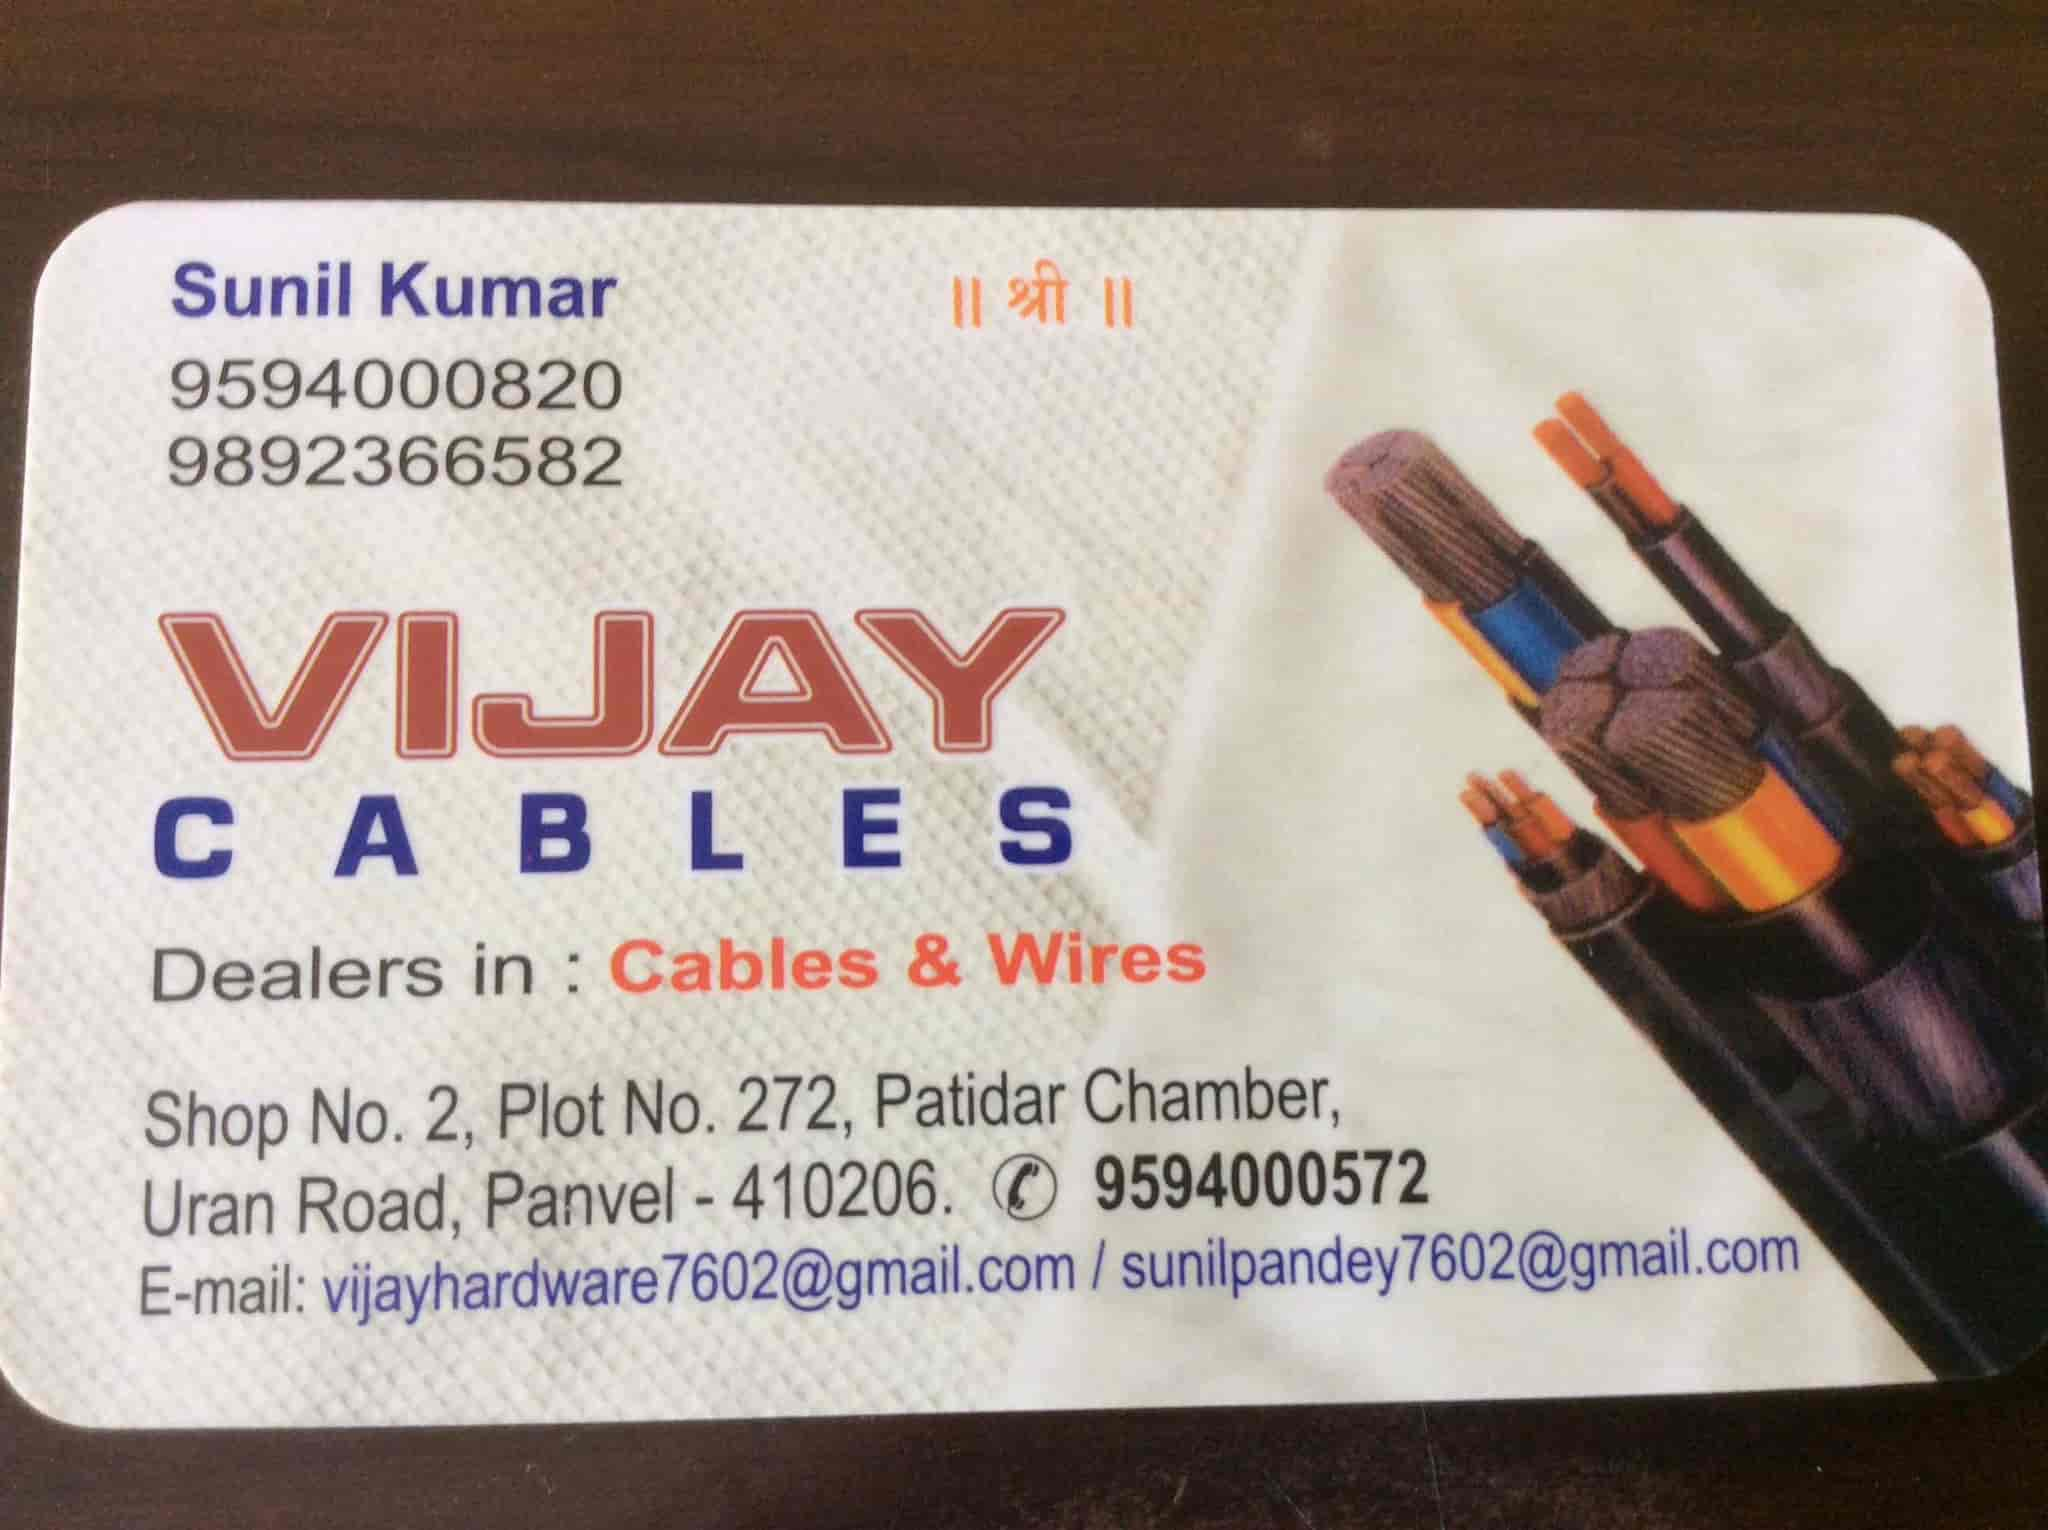 Vijay Cable Panvel Veejay Dealers In Mumbai Justdial Copyright 2008 Ab And Wiring All Rights Reserved